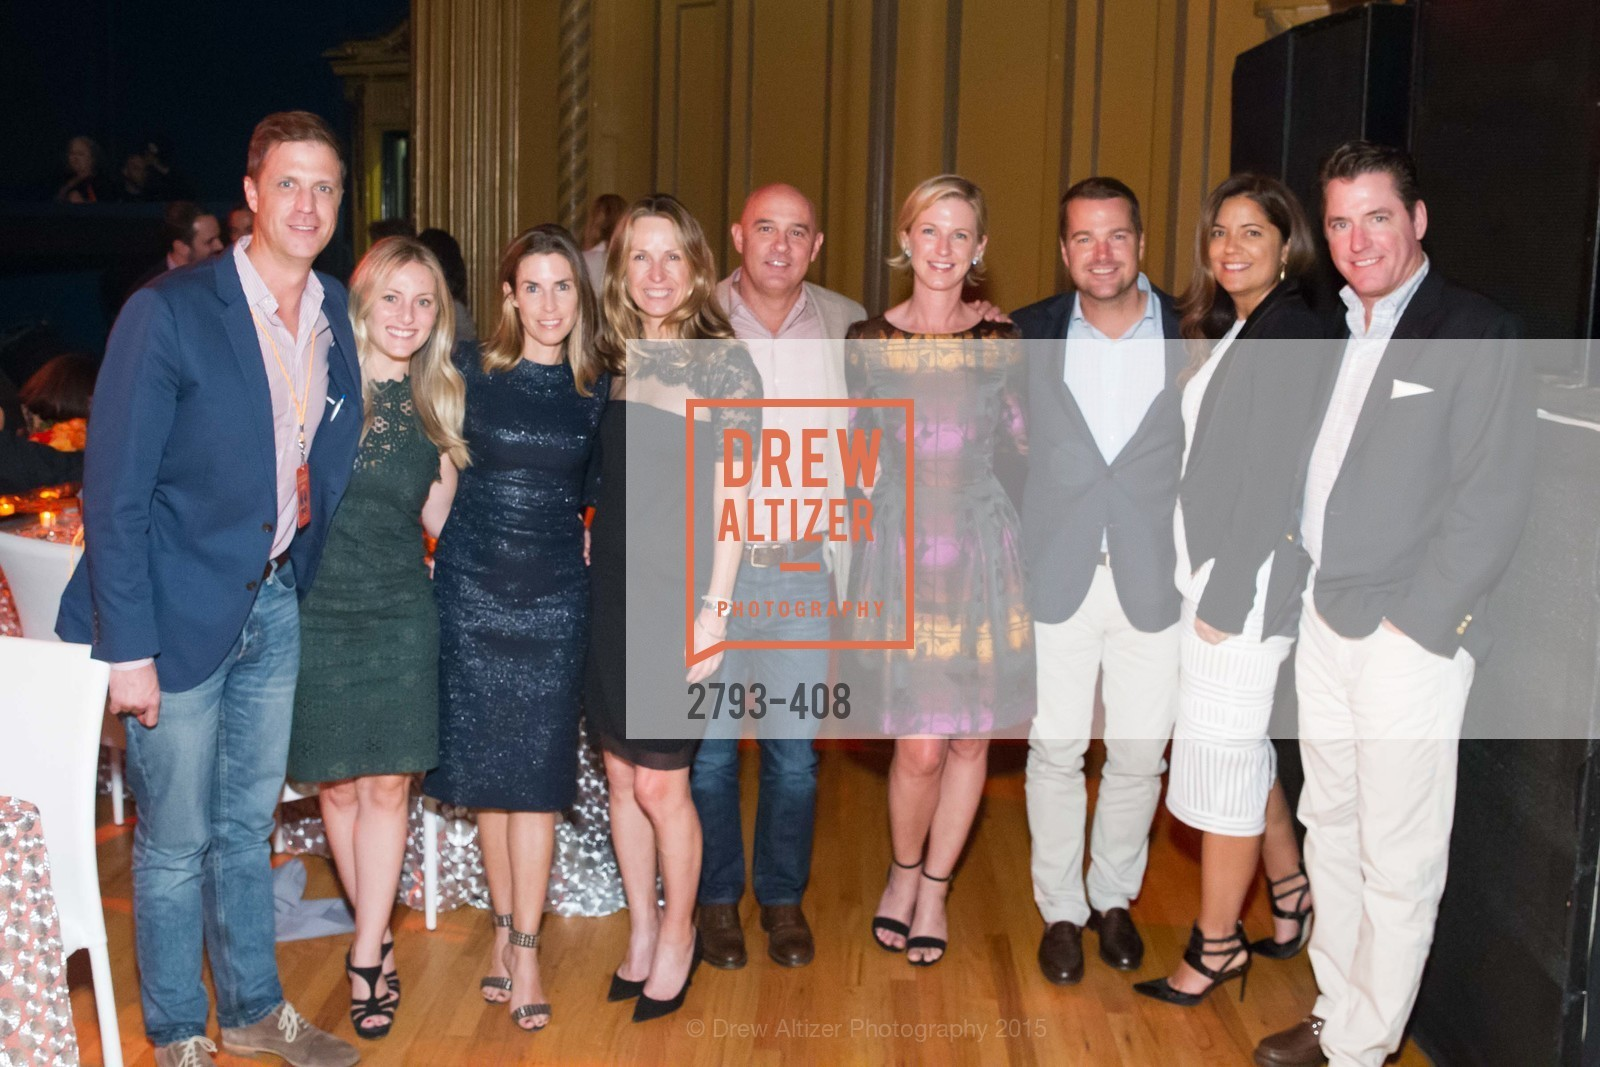 Lee Fentris, Carly Fentris, Caroline O'Donnell, John Bolin, Chris O'Donnell, REDF's 2015 BENEFIT featuring JOURNEY, The Warfield Theatre. 982 Market St, October 22nd, 2015,Drew Altizer, Drew Altizer Photography, full-service event agency, private events, San Francisco photographer, photographer California